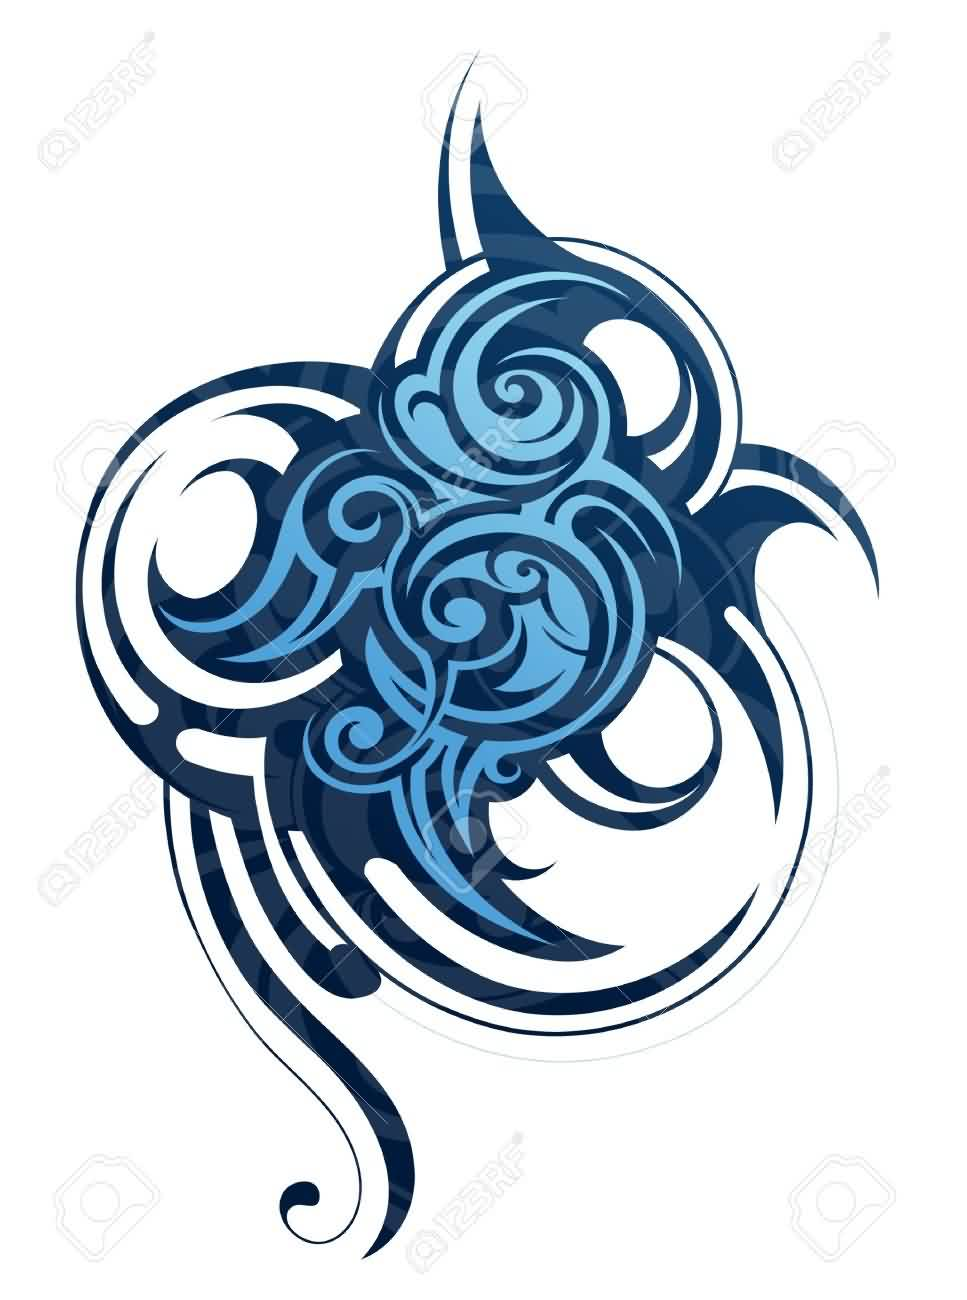 Decorative Tribal Wave Tattoo Design